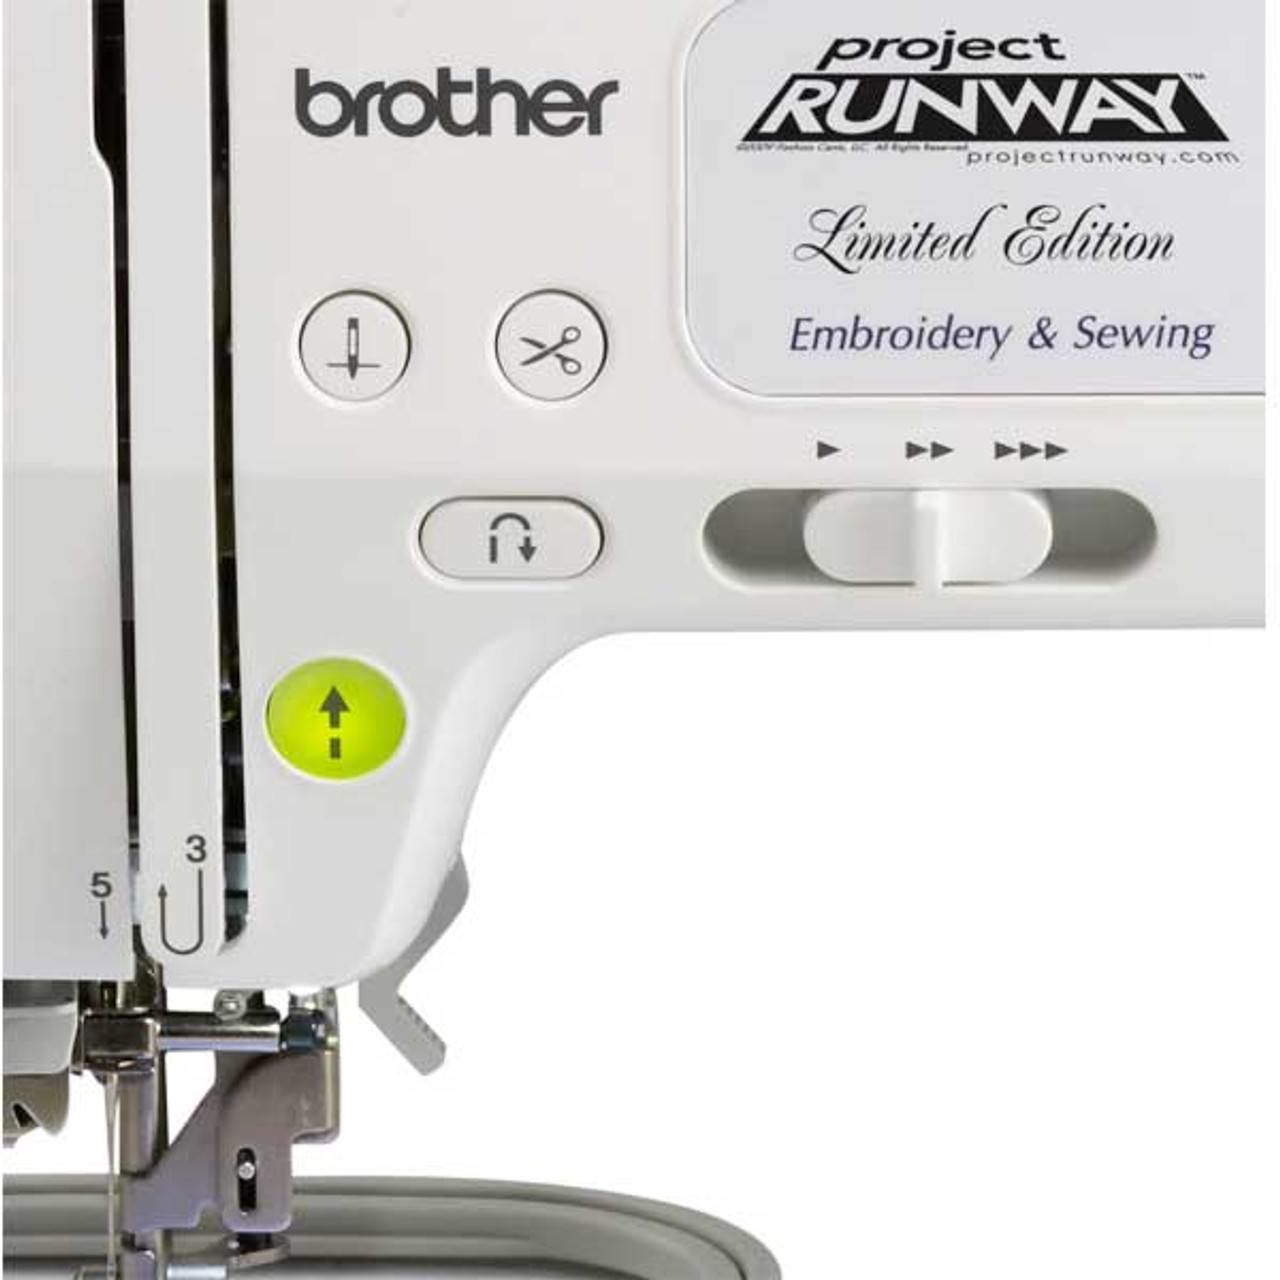 Brother LB40 PRW Project Runway Edition Sewing Embroidery Machine Gorgeous Brother Project Runway Sewing And Embroidery Machine